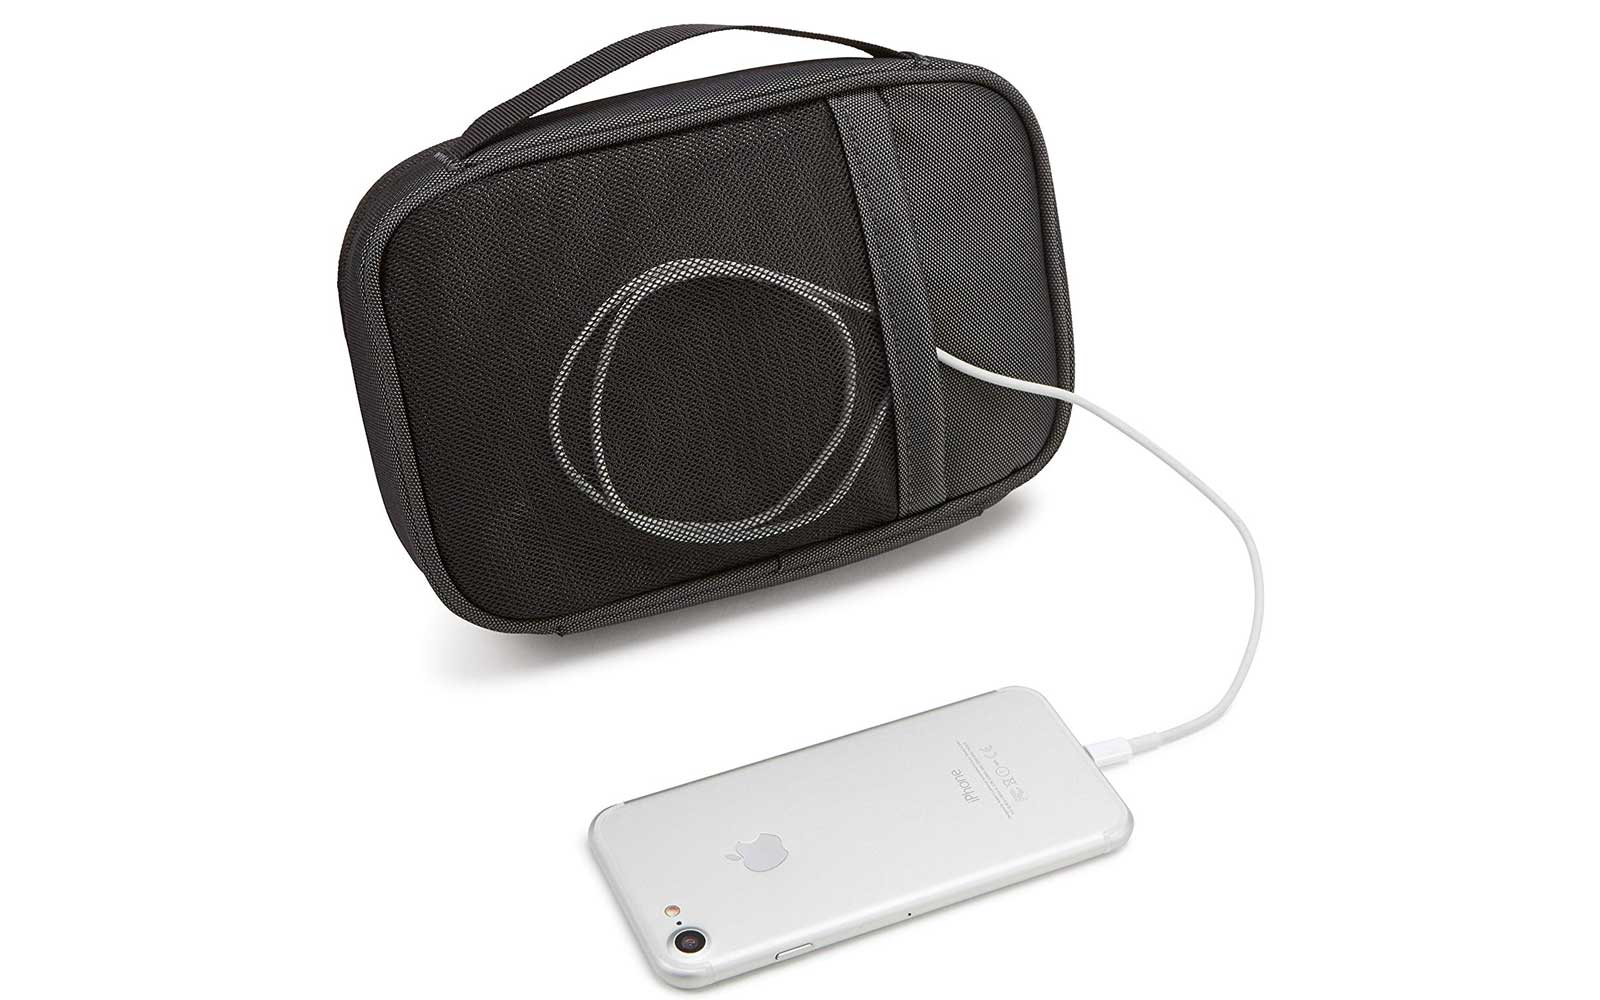 This travel case makes charging your devices on-the-go a breeze